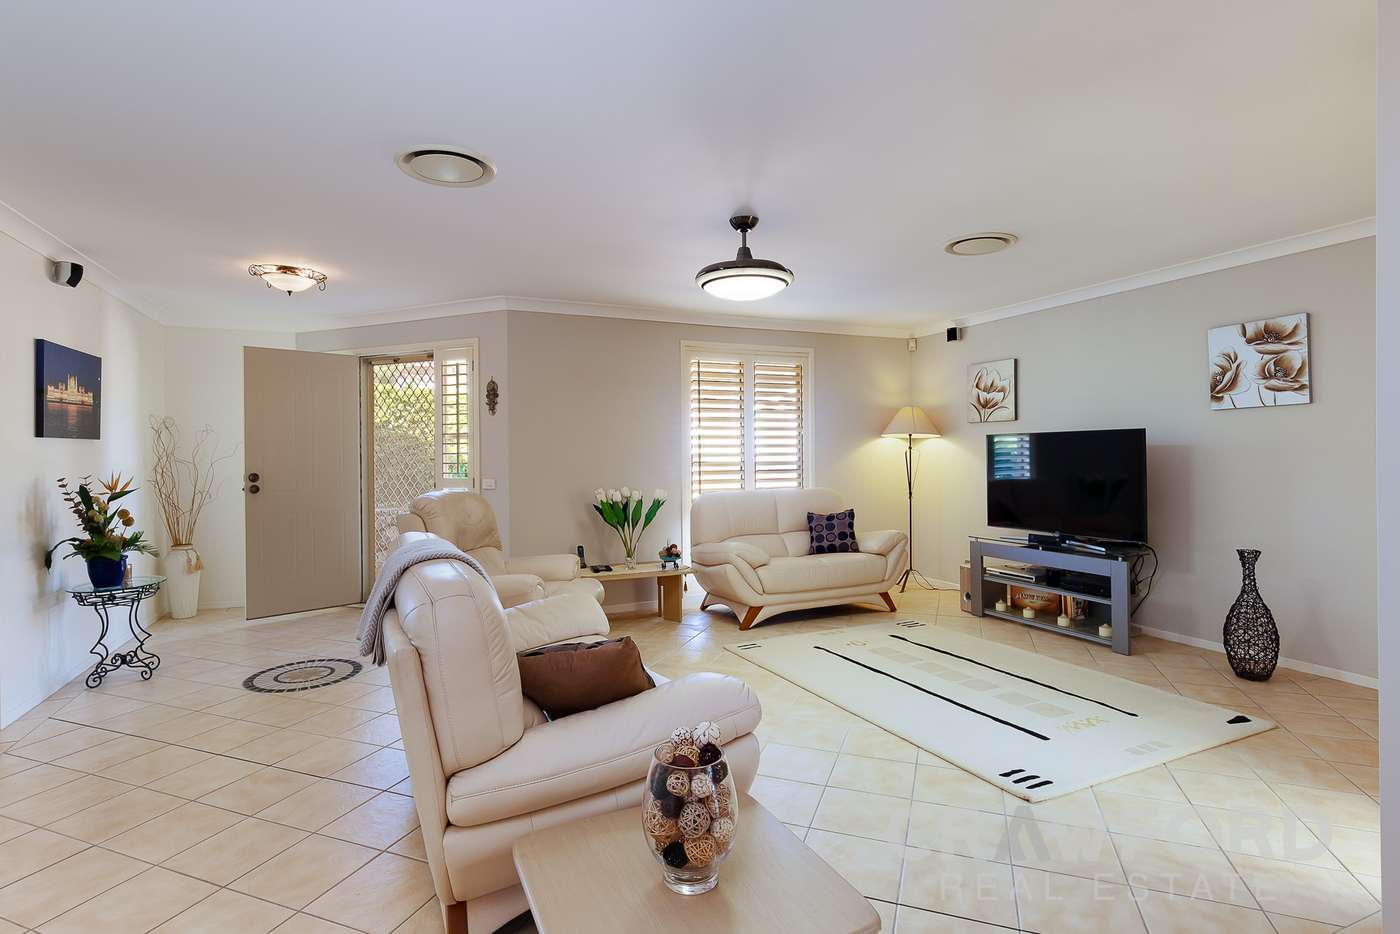 Fifth view of Homely house listing, 69 Birchgrove Drive, Wallsend NSW 2287